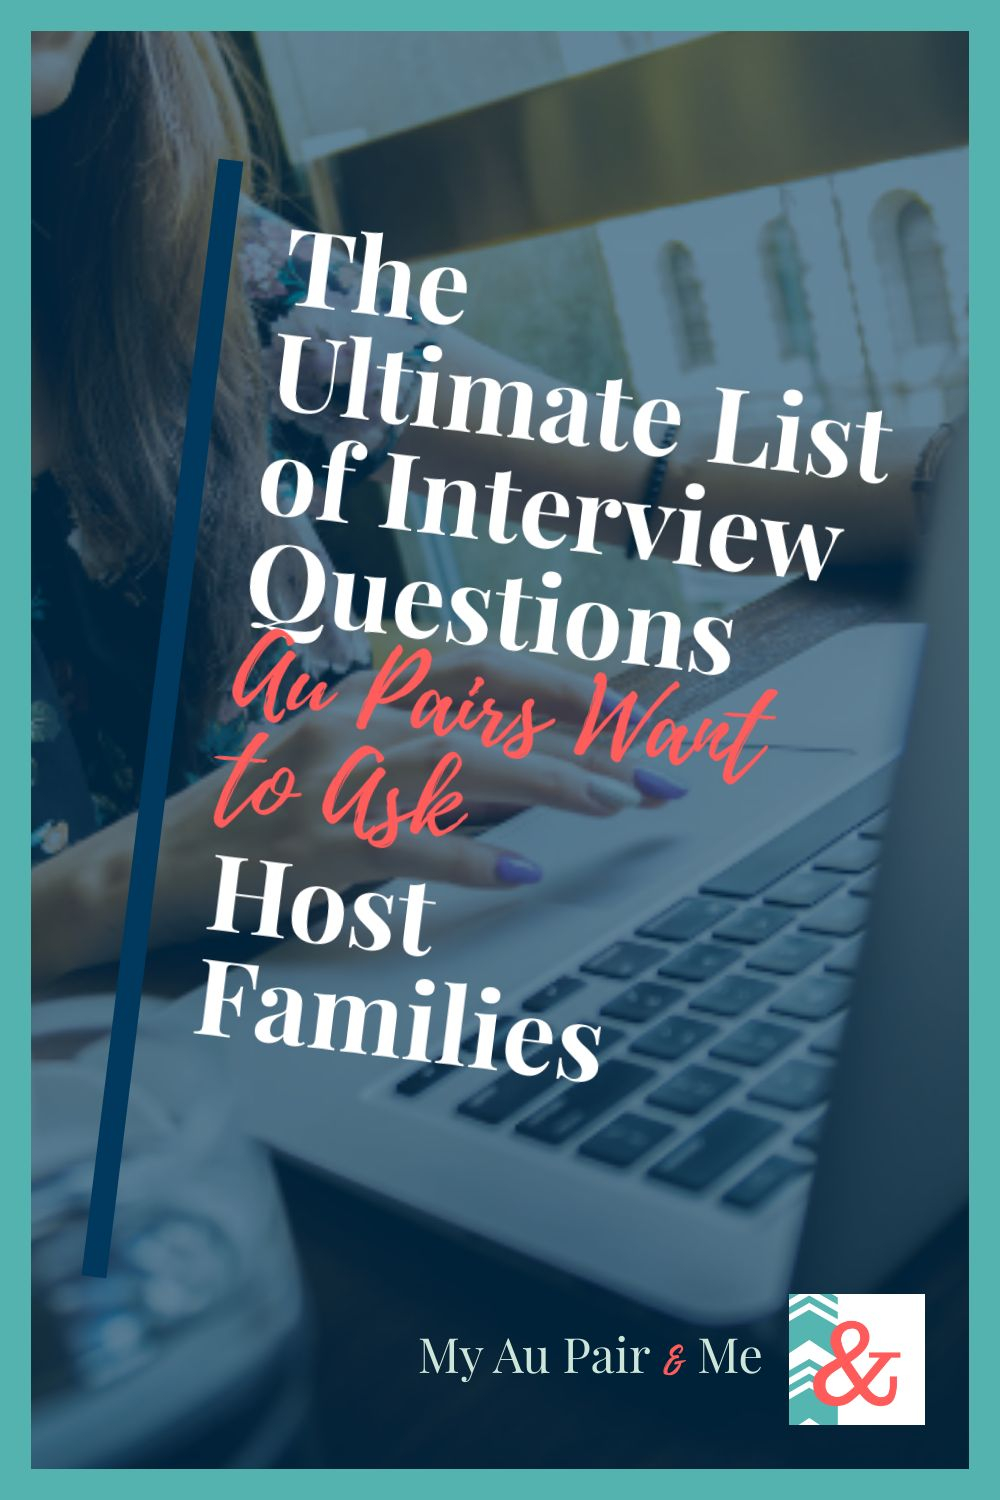 The Ultimate List of Interview Questions Au Pairs Want to Ask Host Families